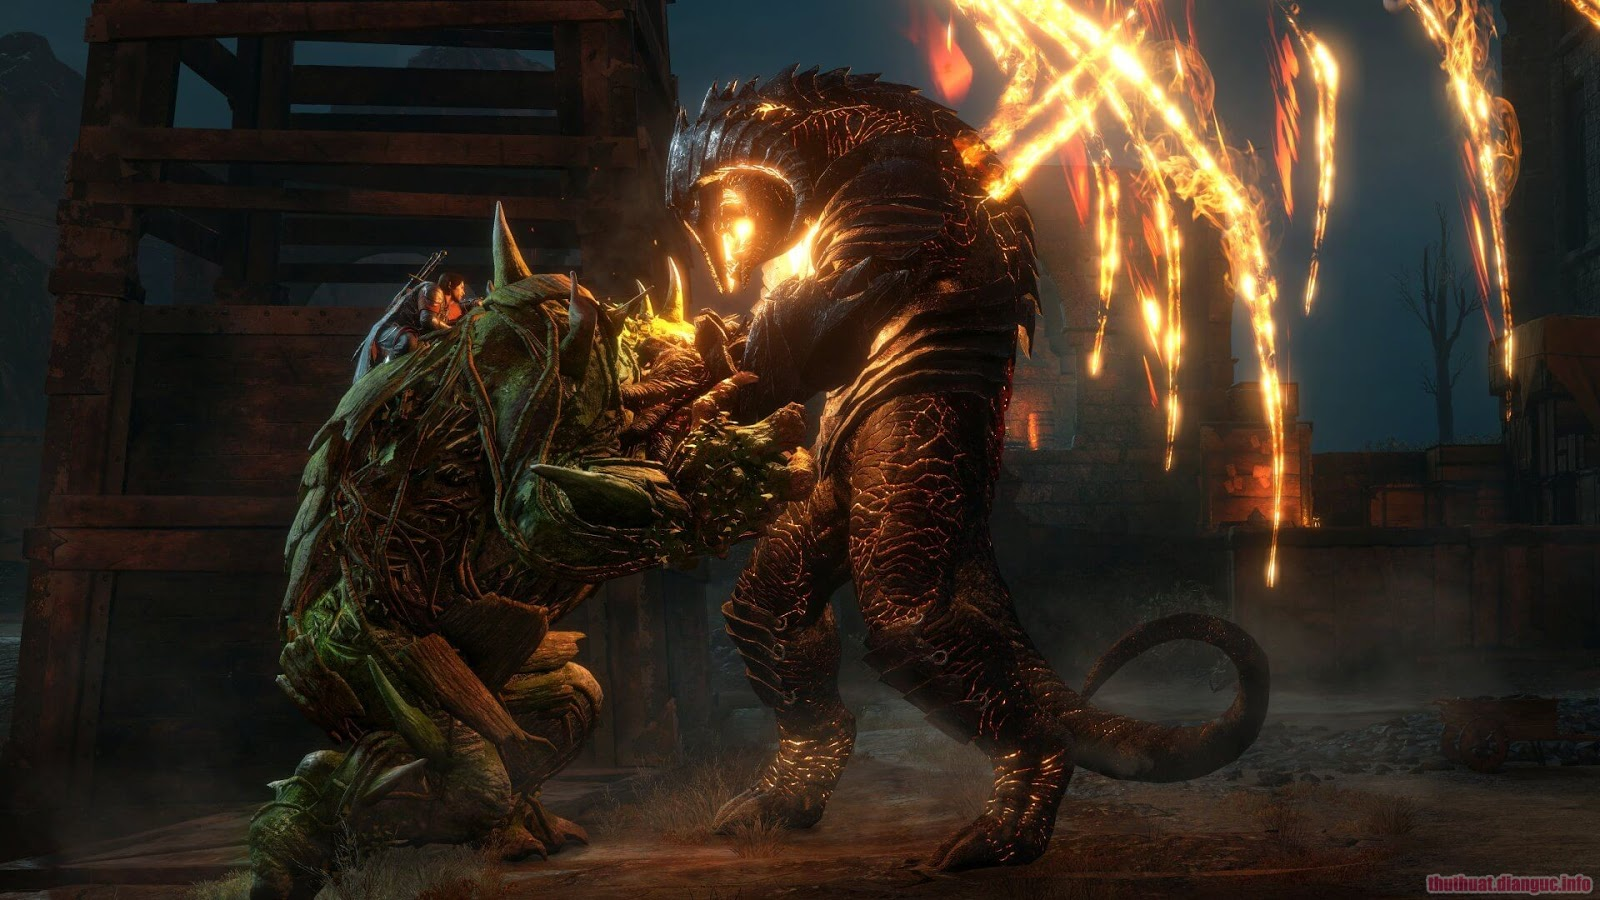 Download Game Middle-Earth: Shadow of War Full Crack, Game Middle-Earth: Shadow of War Full Crack, Game Middle-Earth: Shadow of War free download, Middle-Earth: Shadow of War , Middle-Earth: Shadow of War free download